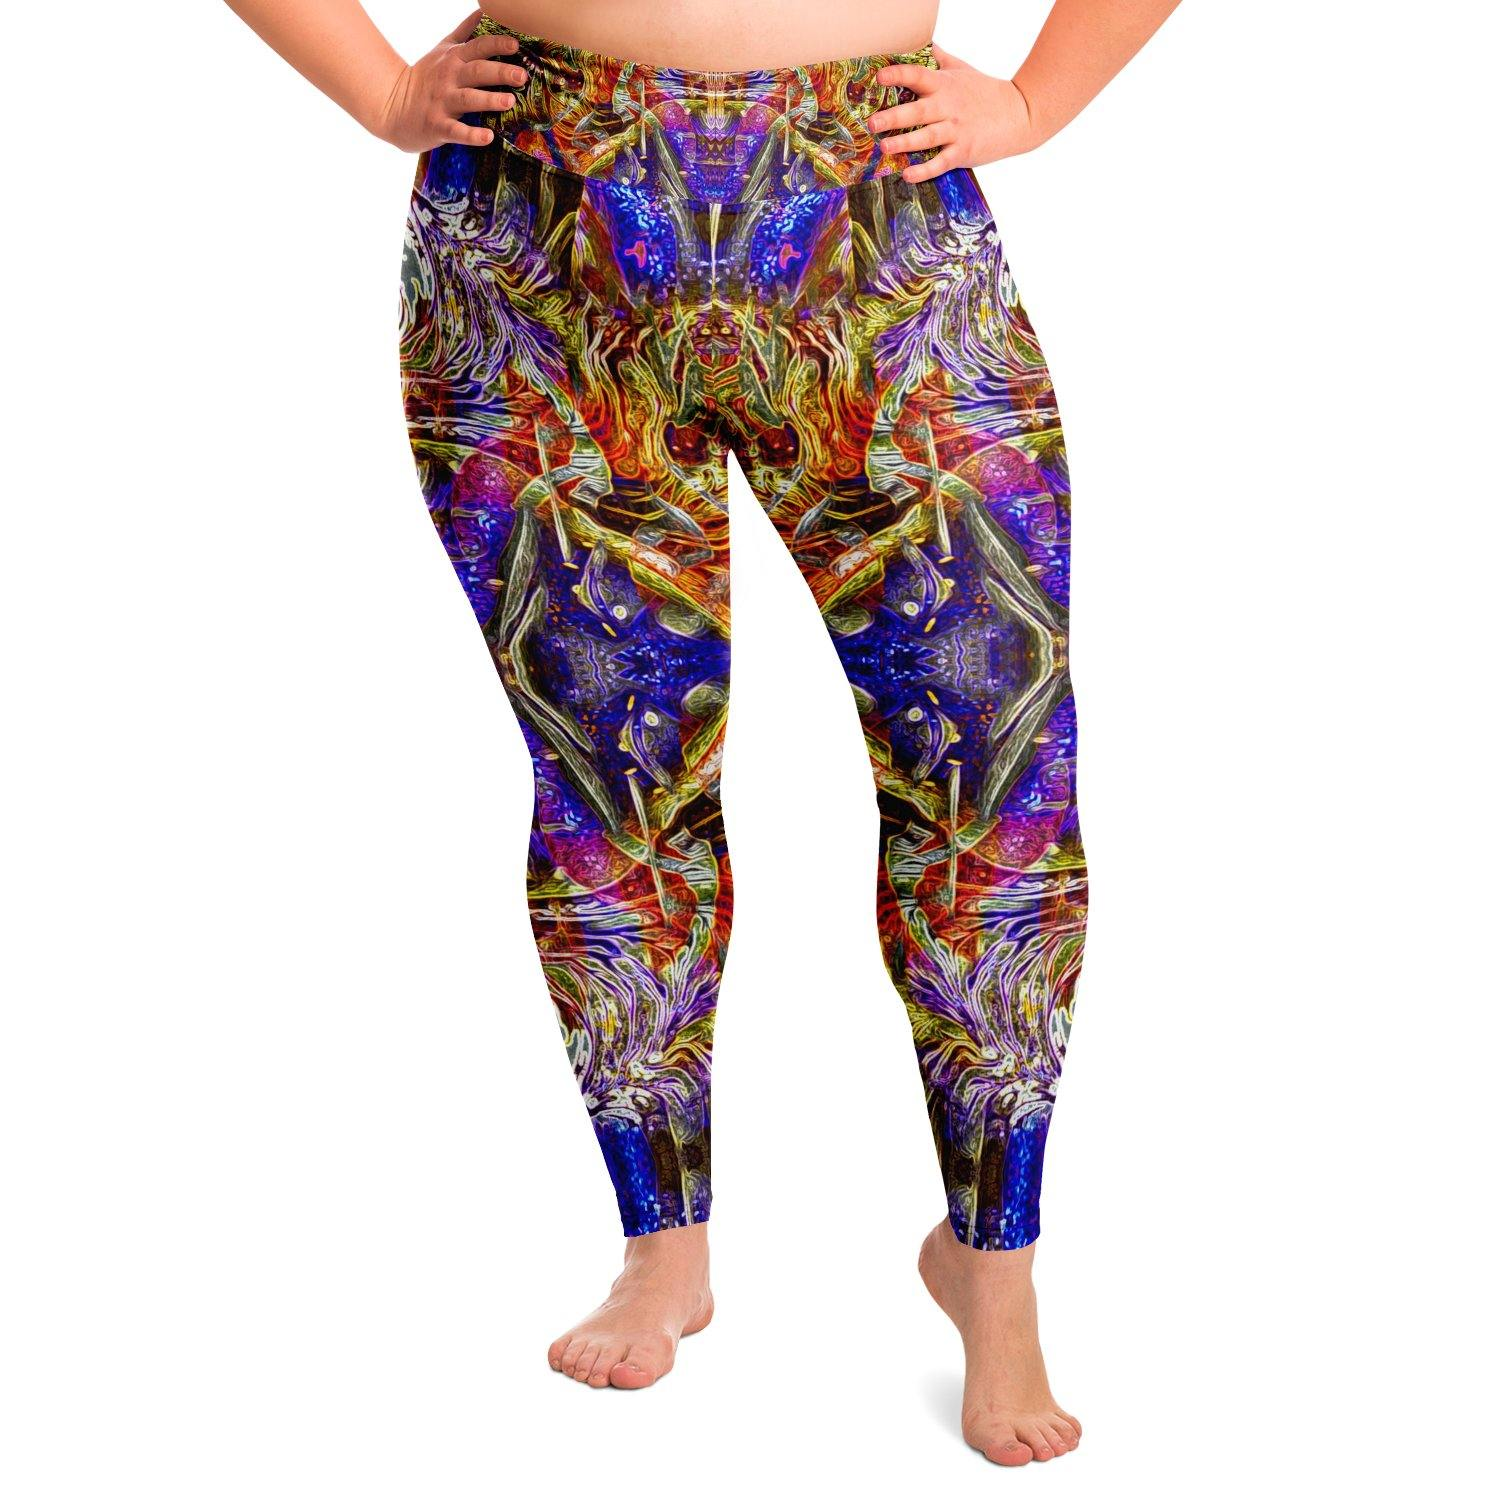 Nirvana Bliss Premium Plus Size Yoga Leggings